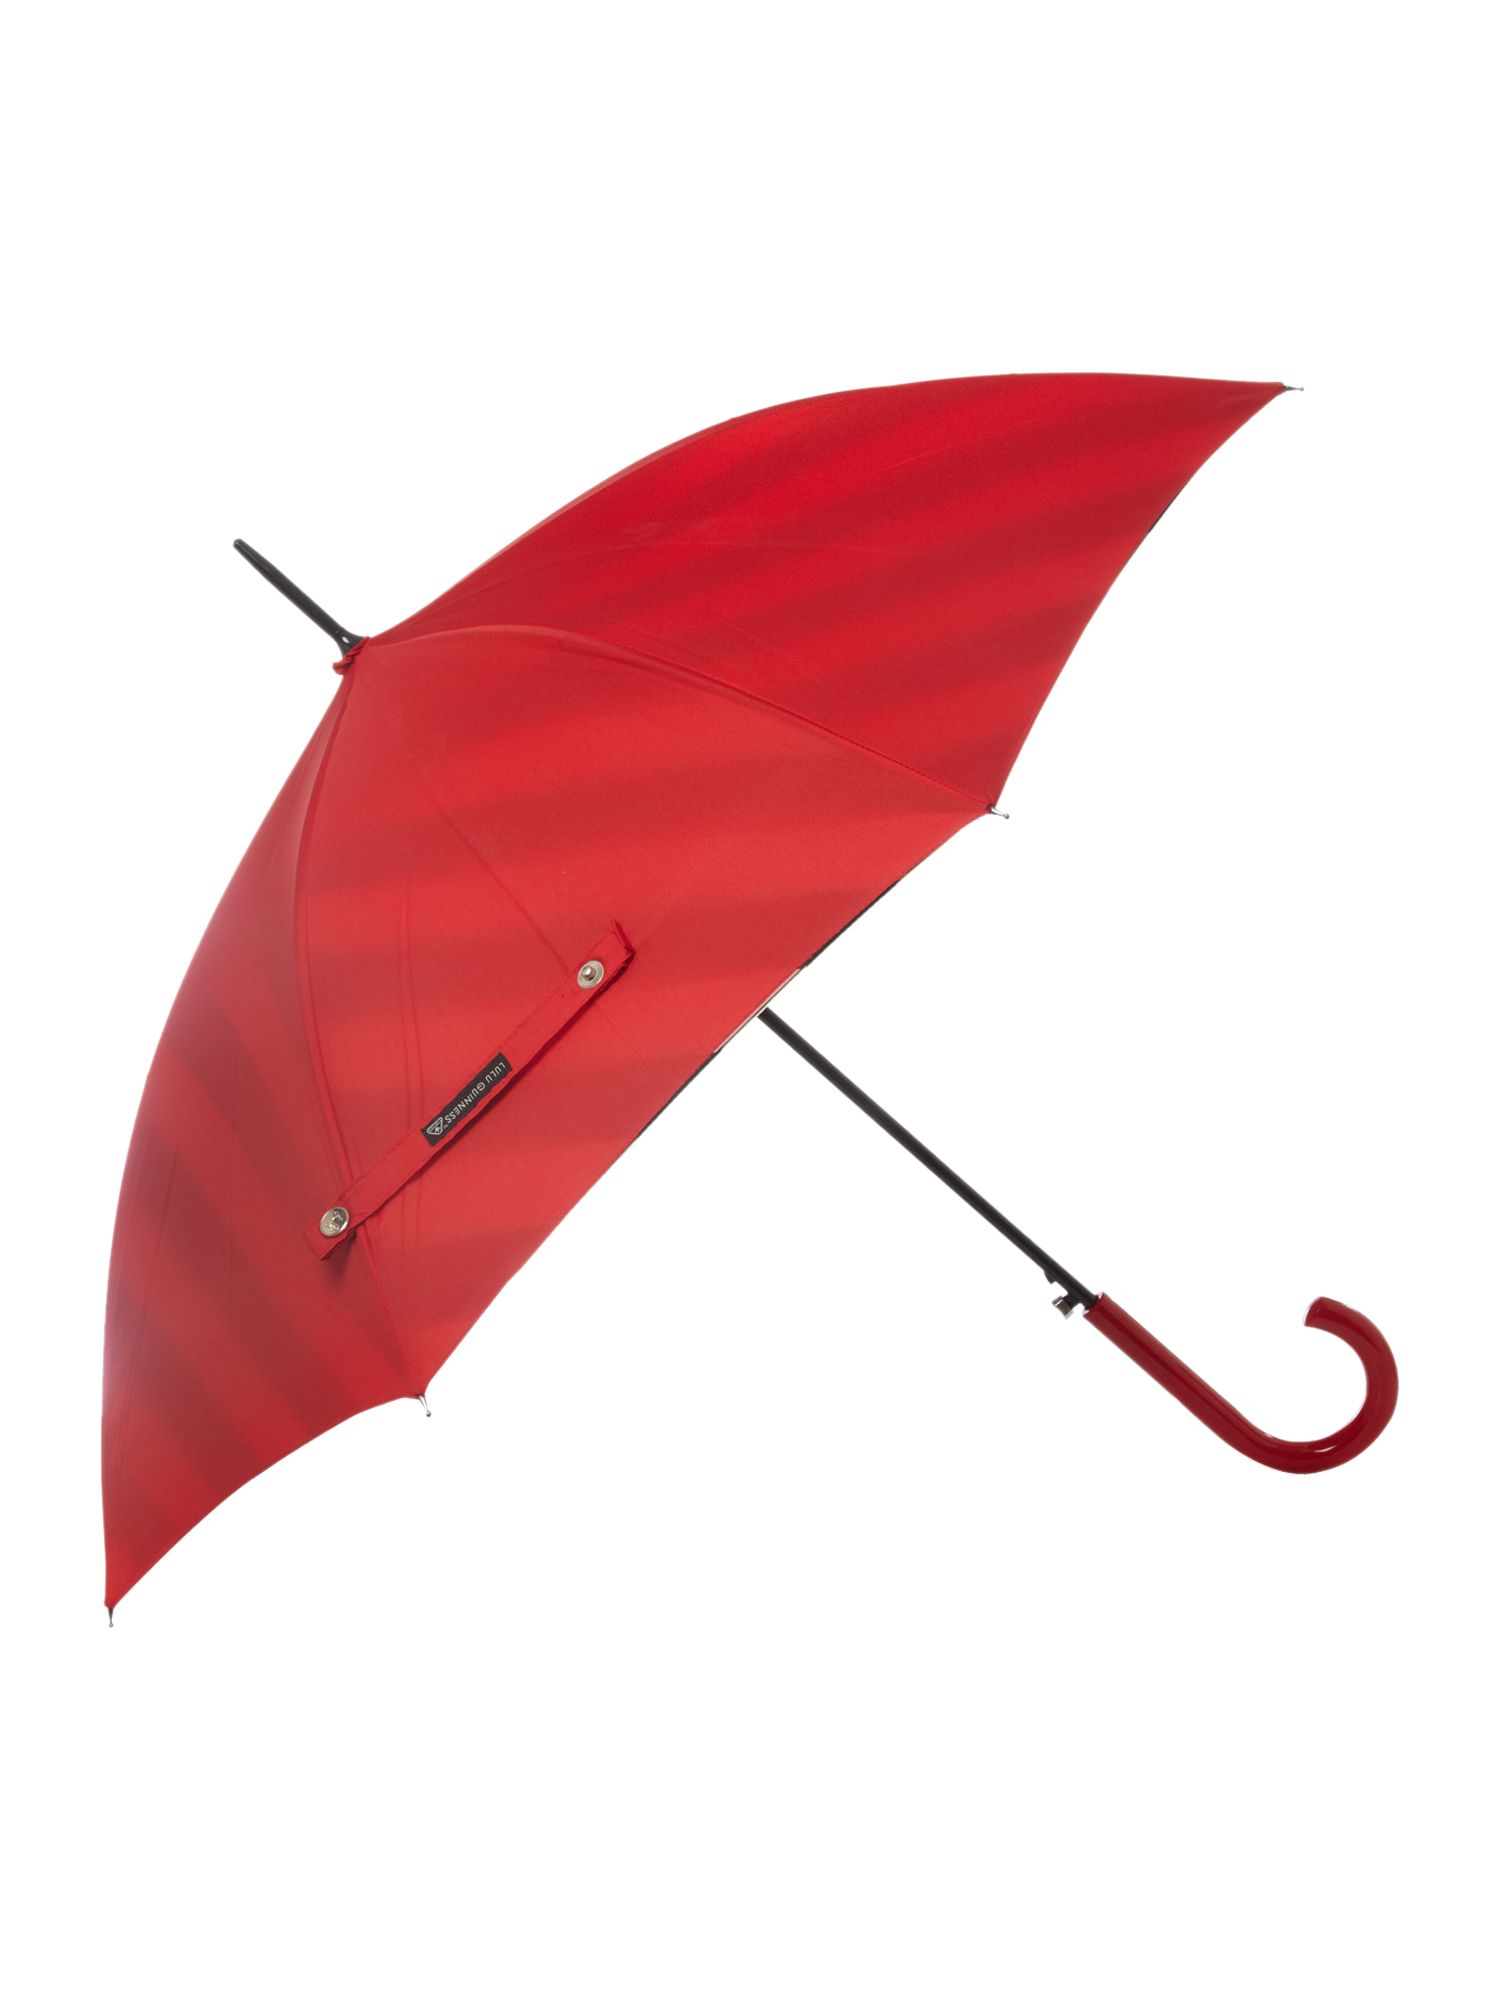 Bloomsbury umbrella with diagonal stripe lining